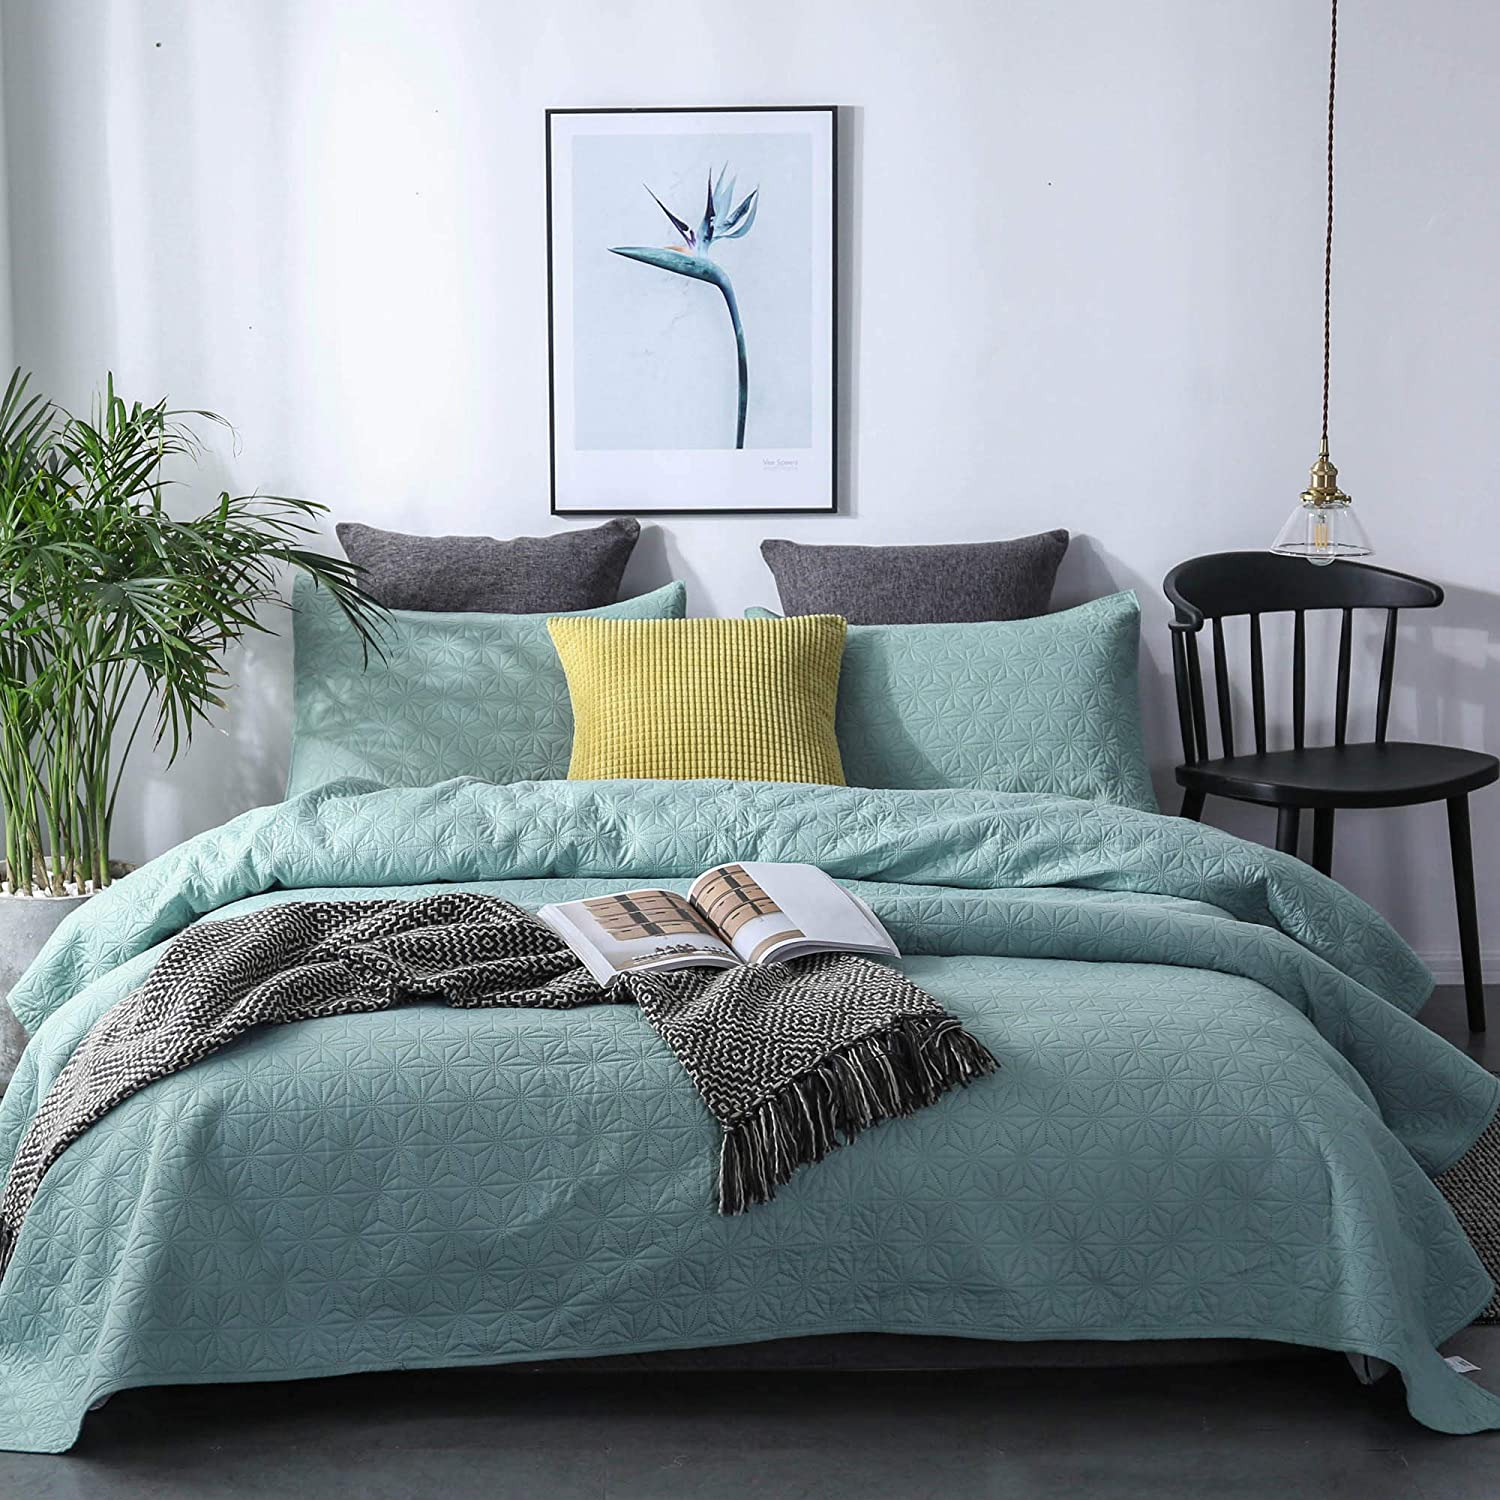 Aqua Sea Green Solid Colors Bedspread Luxury Microfiber Soft Warm Bedding KASENTEX Quilted Coverlet Set Contemporary Star Design 1 Sham Twin Pre Washed